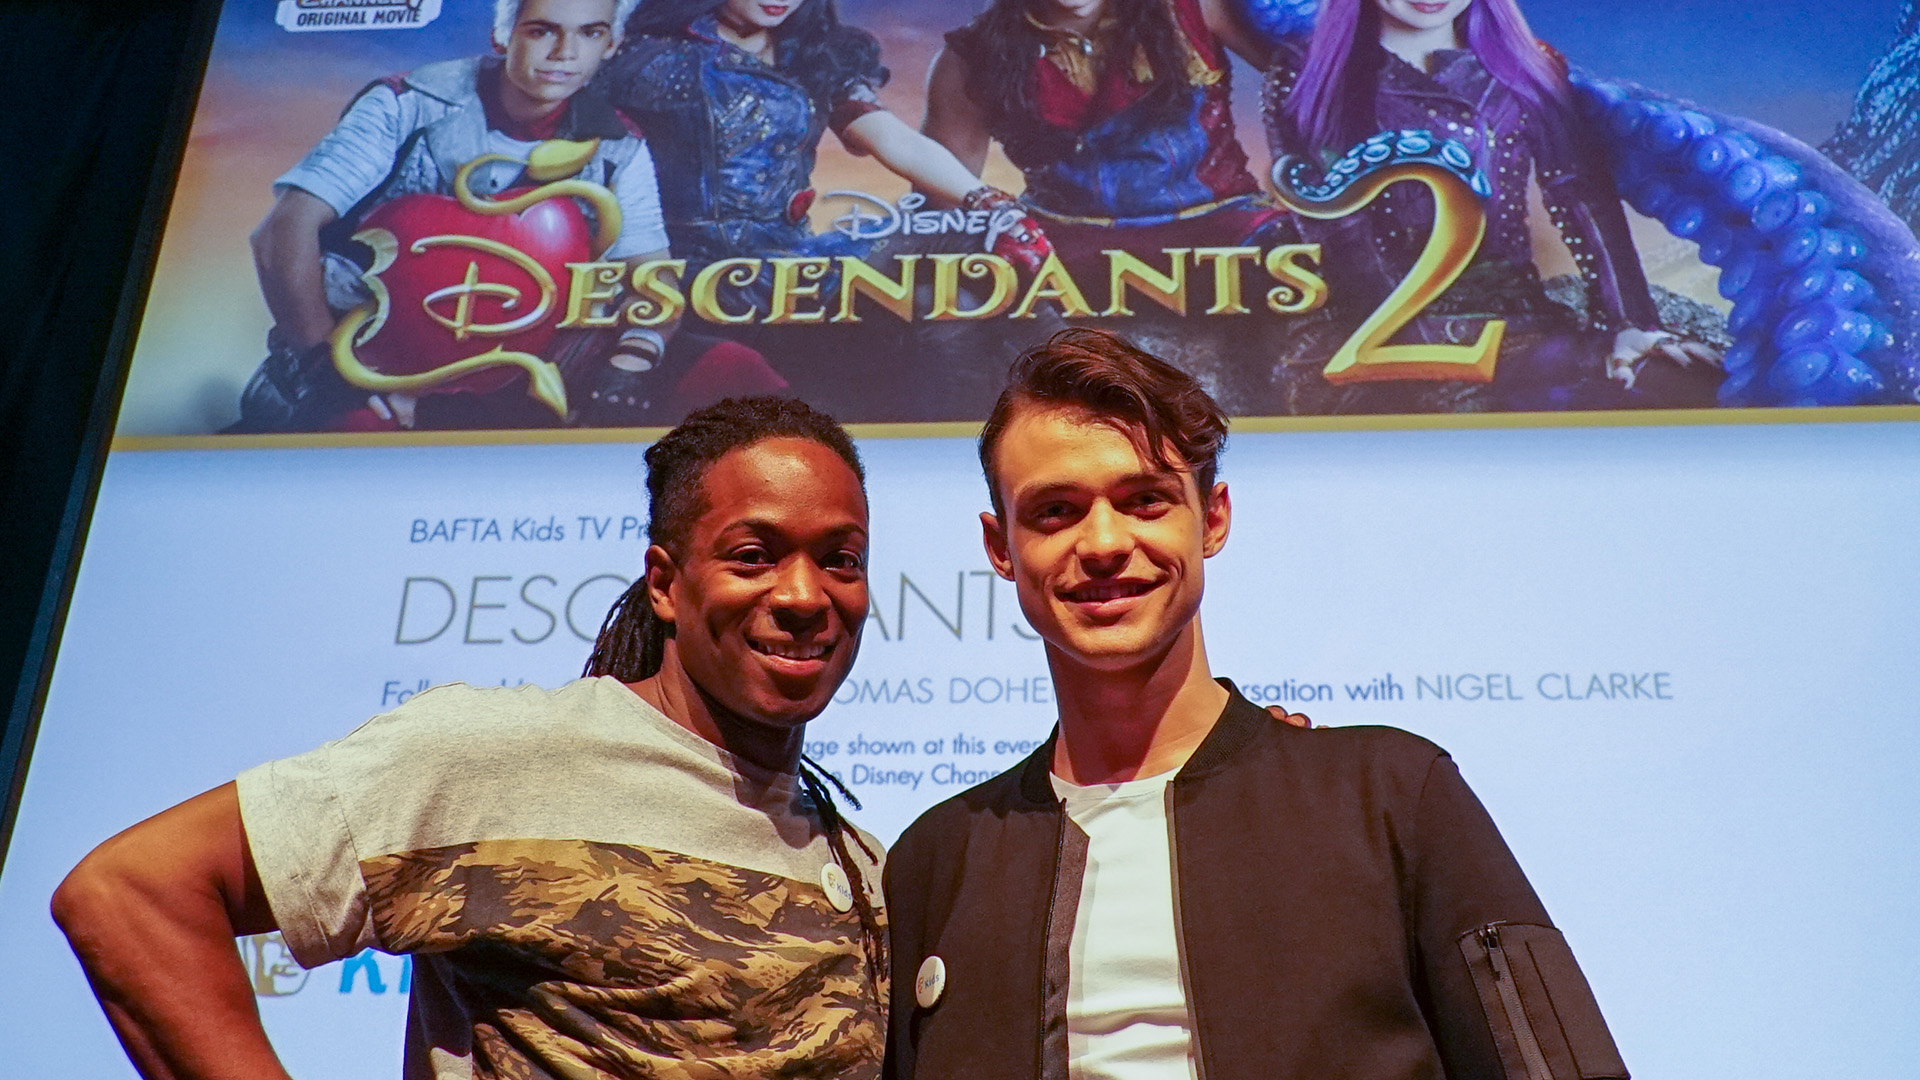 Descendants 2 BAFTA Preview - With Nigel Clarke and Thomas Doherty